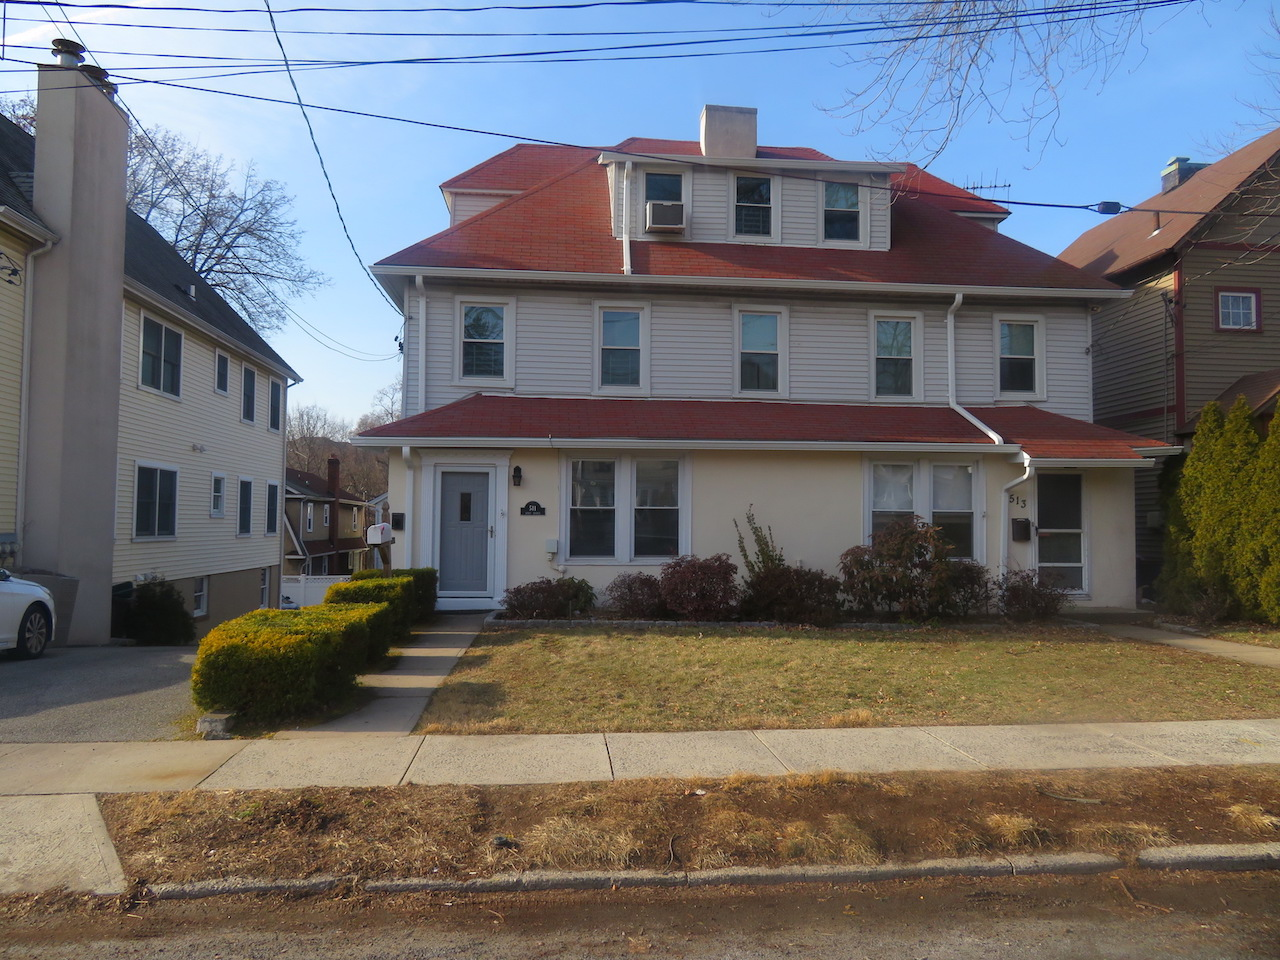 Single Family Home for Rent at 511 First Avenue 511 First Avenue Pelham, New York 10803 United States